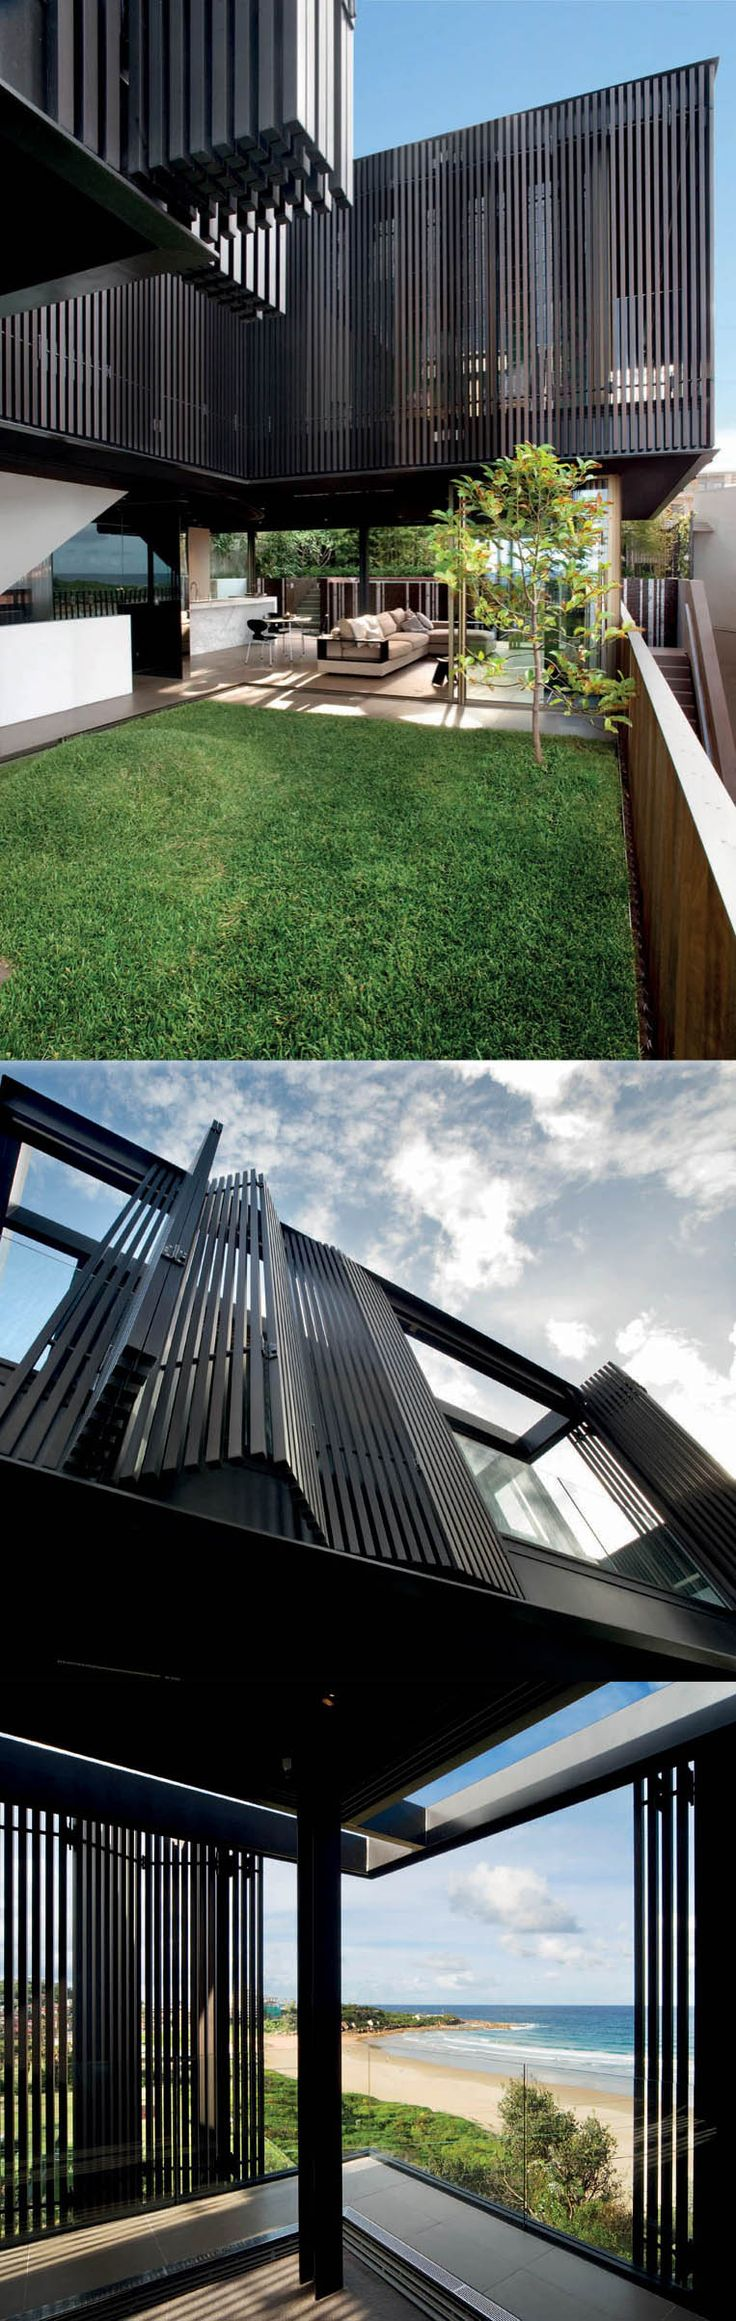 146 best Cool Architecture images on Pinterest | Architecture ...